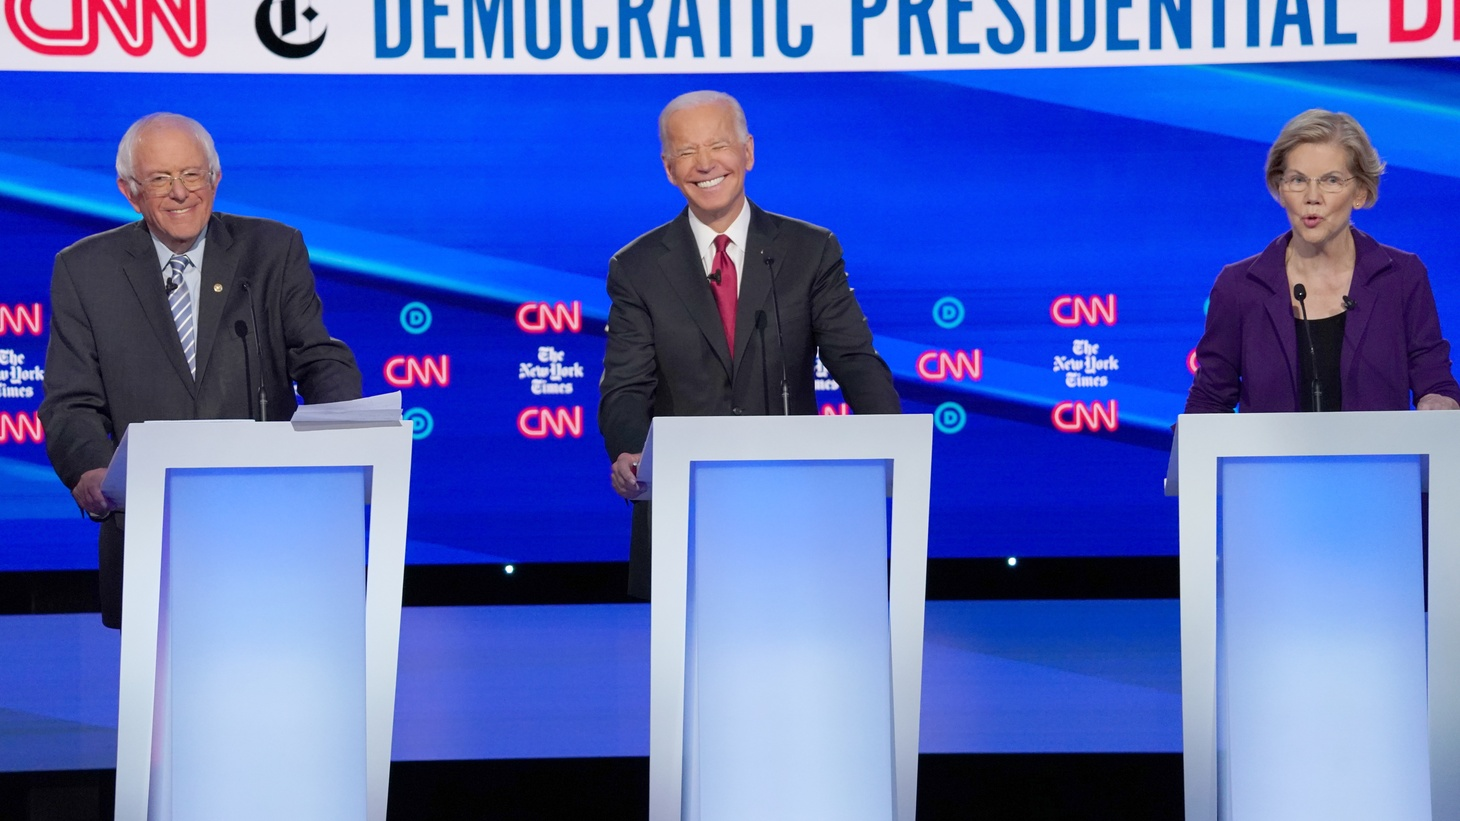 Democratic presidential candidate Senator Bernie Sanders and former Vice President Joe Biden listen to Senator Elizabeth Warren as they debate during the fourth U.S. Democratic presidential candidates 2020 election debate in Westerville, Ohio, U.S., October 15, 2019.